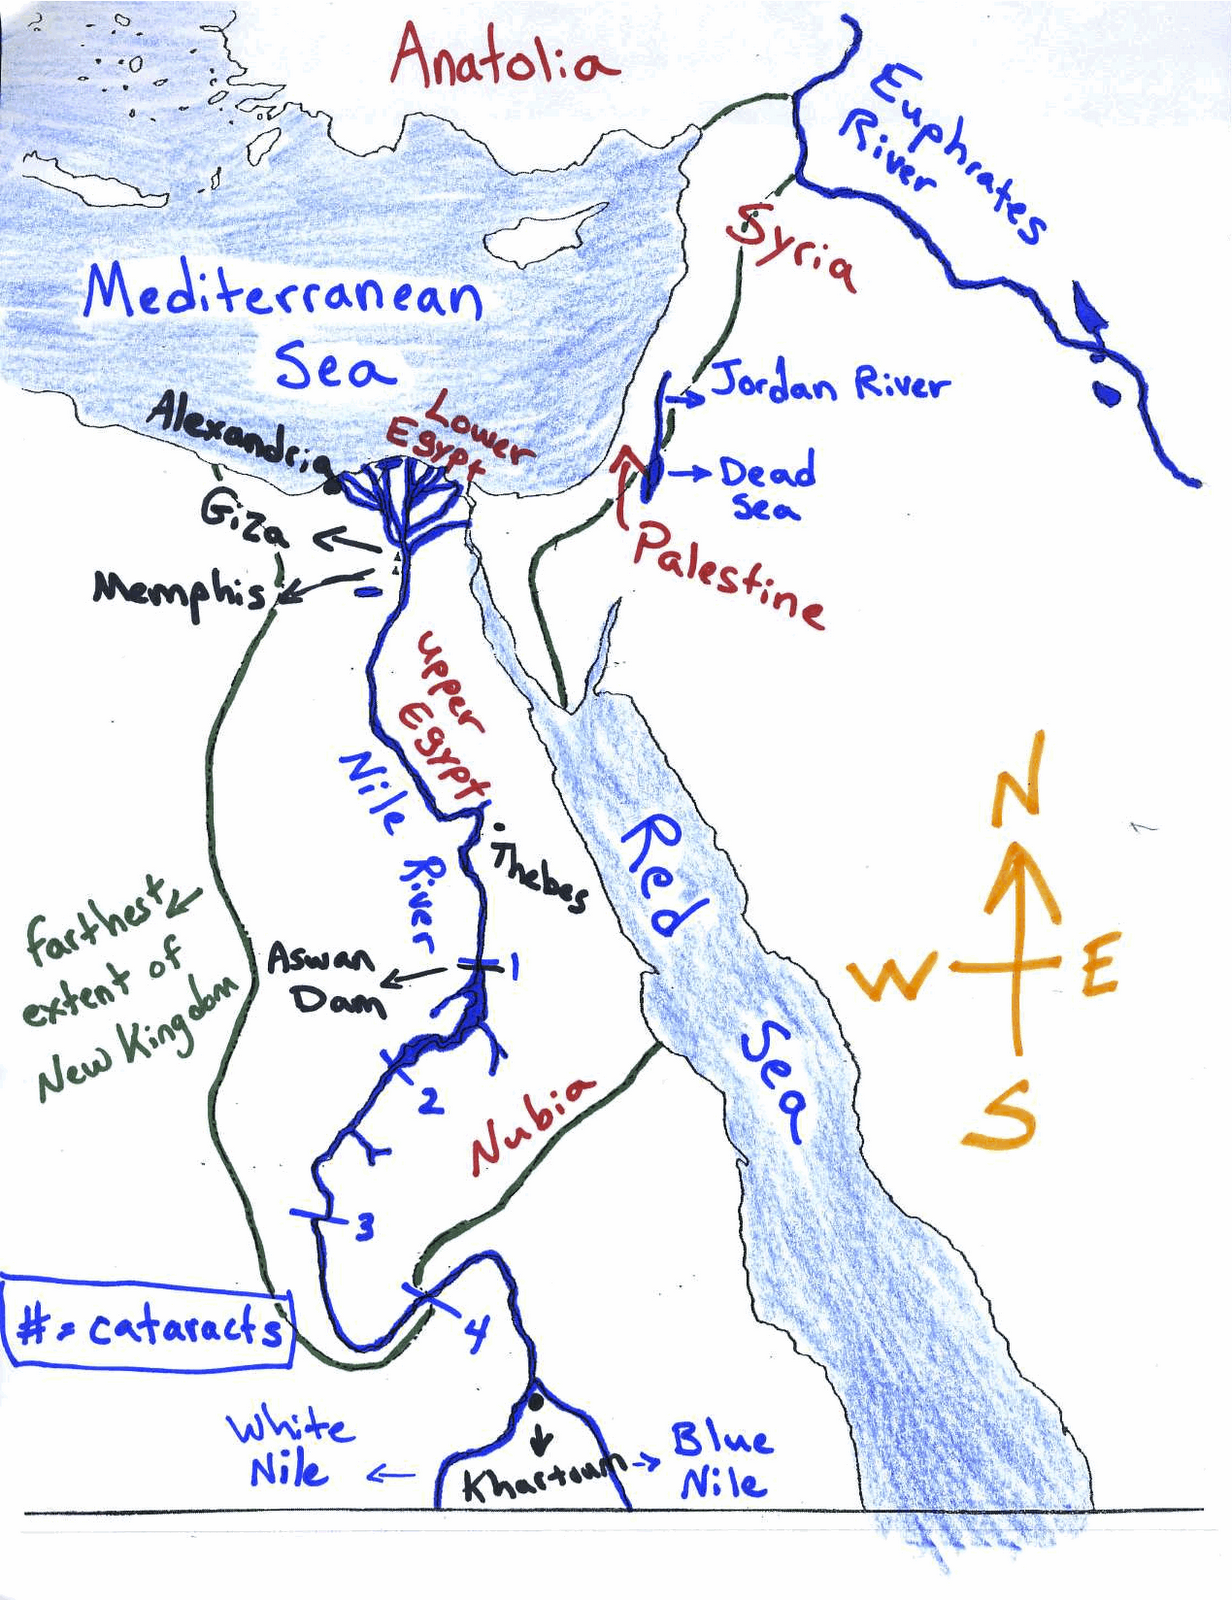 Mr.Guerriero's Blog: Ancient Egypt Map: Blank and Filled-In ... on map of ancient meroe, map of ancient assyria, map of ancient aethiopia, map of ancient axum, map of ancient cairo, map of ancient dynasty, map of ancient harran, map of ancient troy, map of ancient egypt, map of ancient oyo empire, map of ancient nimrud, map of ancient thebes, map of ancient palmyra, map of ancient abu simbel, map of ancient babylon, map of ancient nineveh, map of ancient cush, map of ancient kush, map of ancient esna, map of ancient lagash,